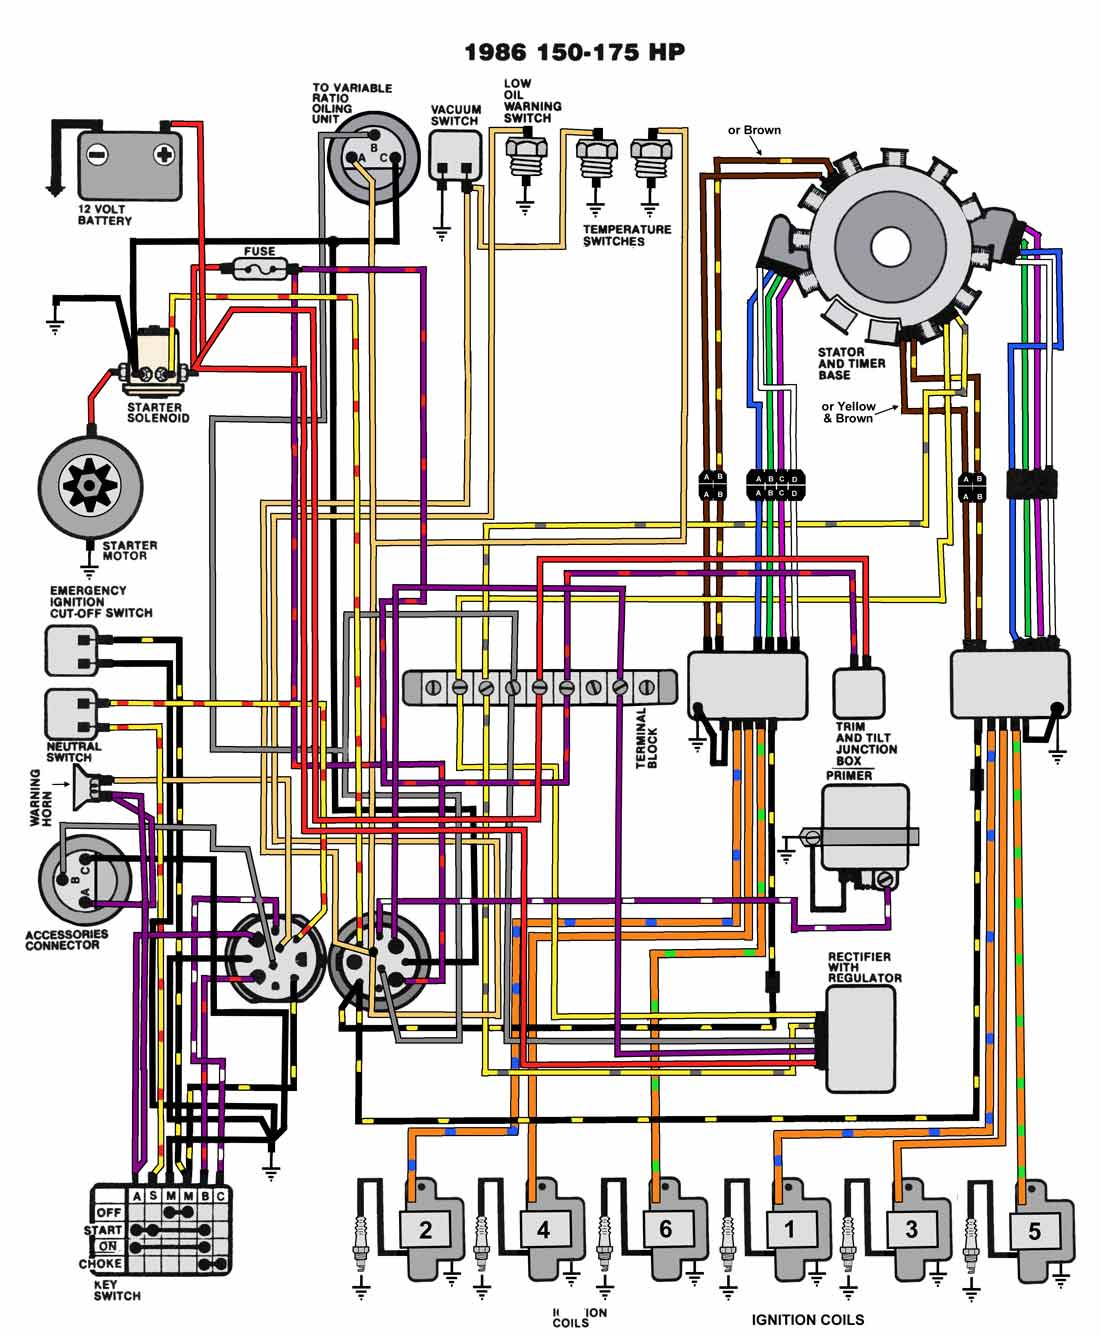 1986_150_175 mastertech marine evinrude johnson outboard wiring diagrams johnson outboard ignition switch wiring diagram at creativeand.co